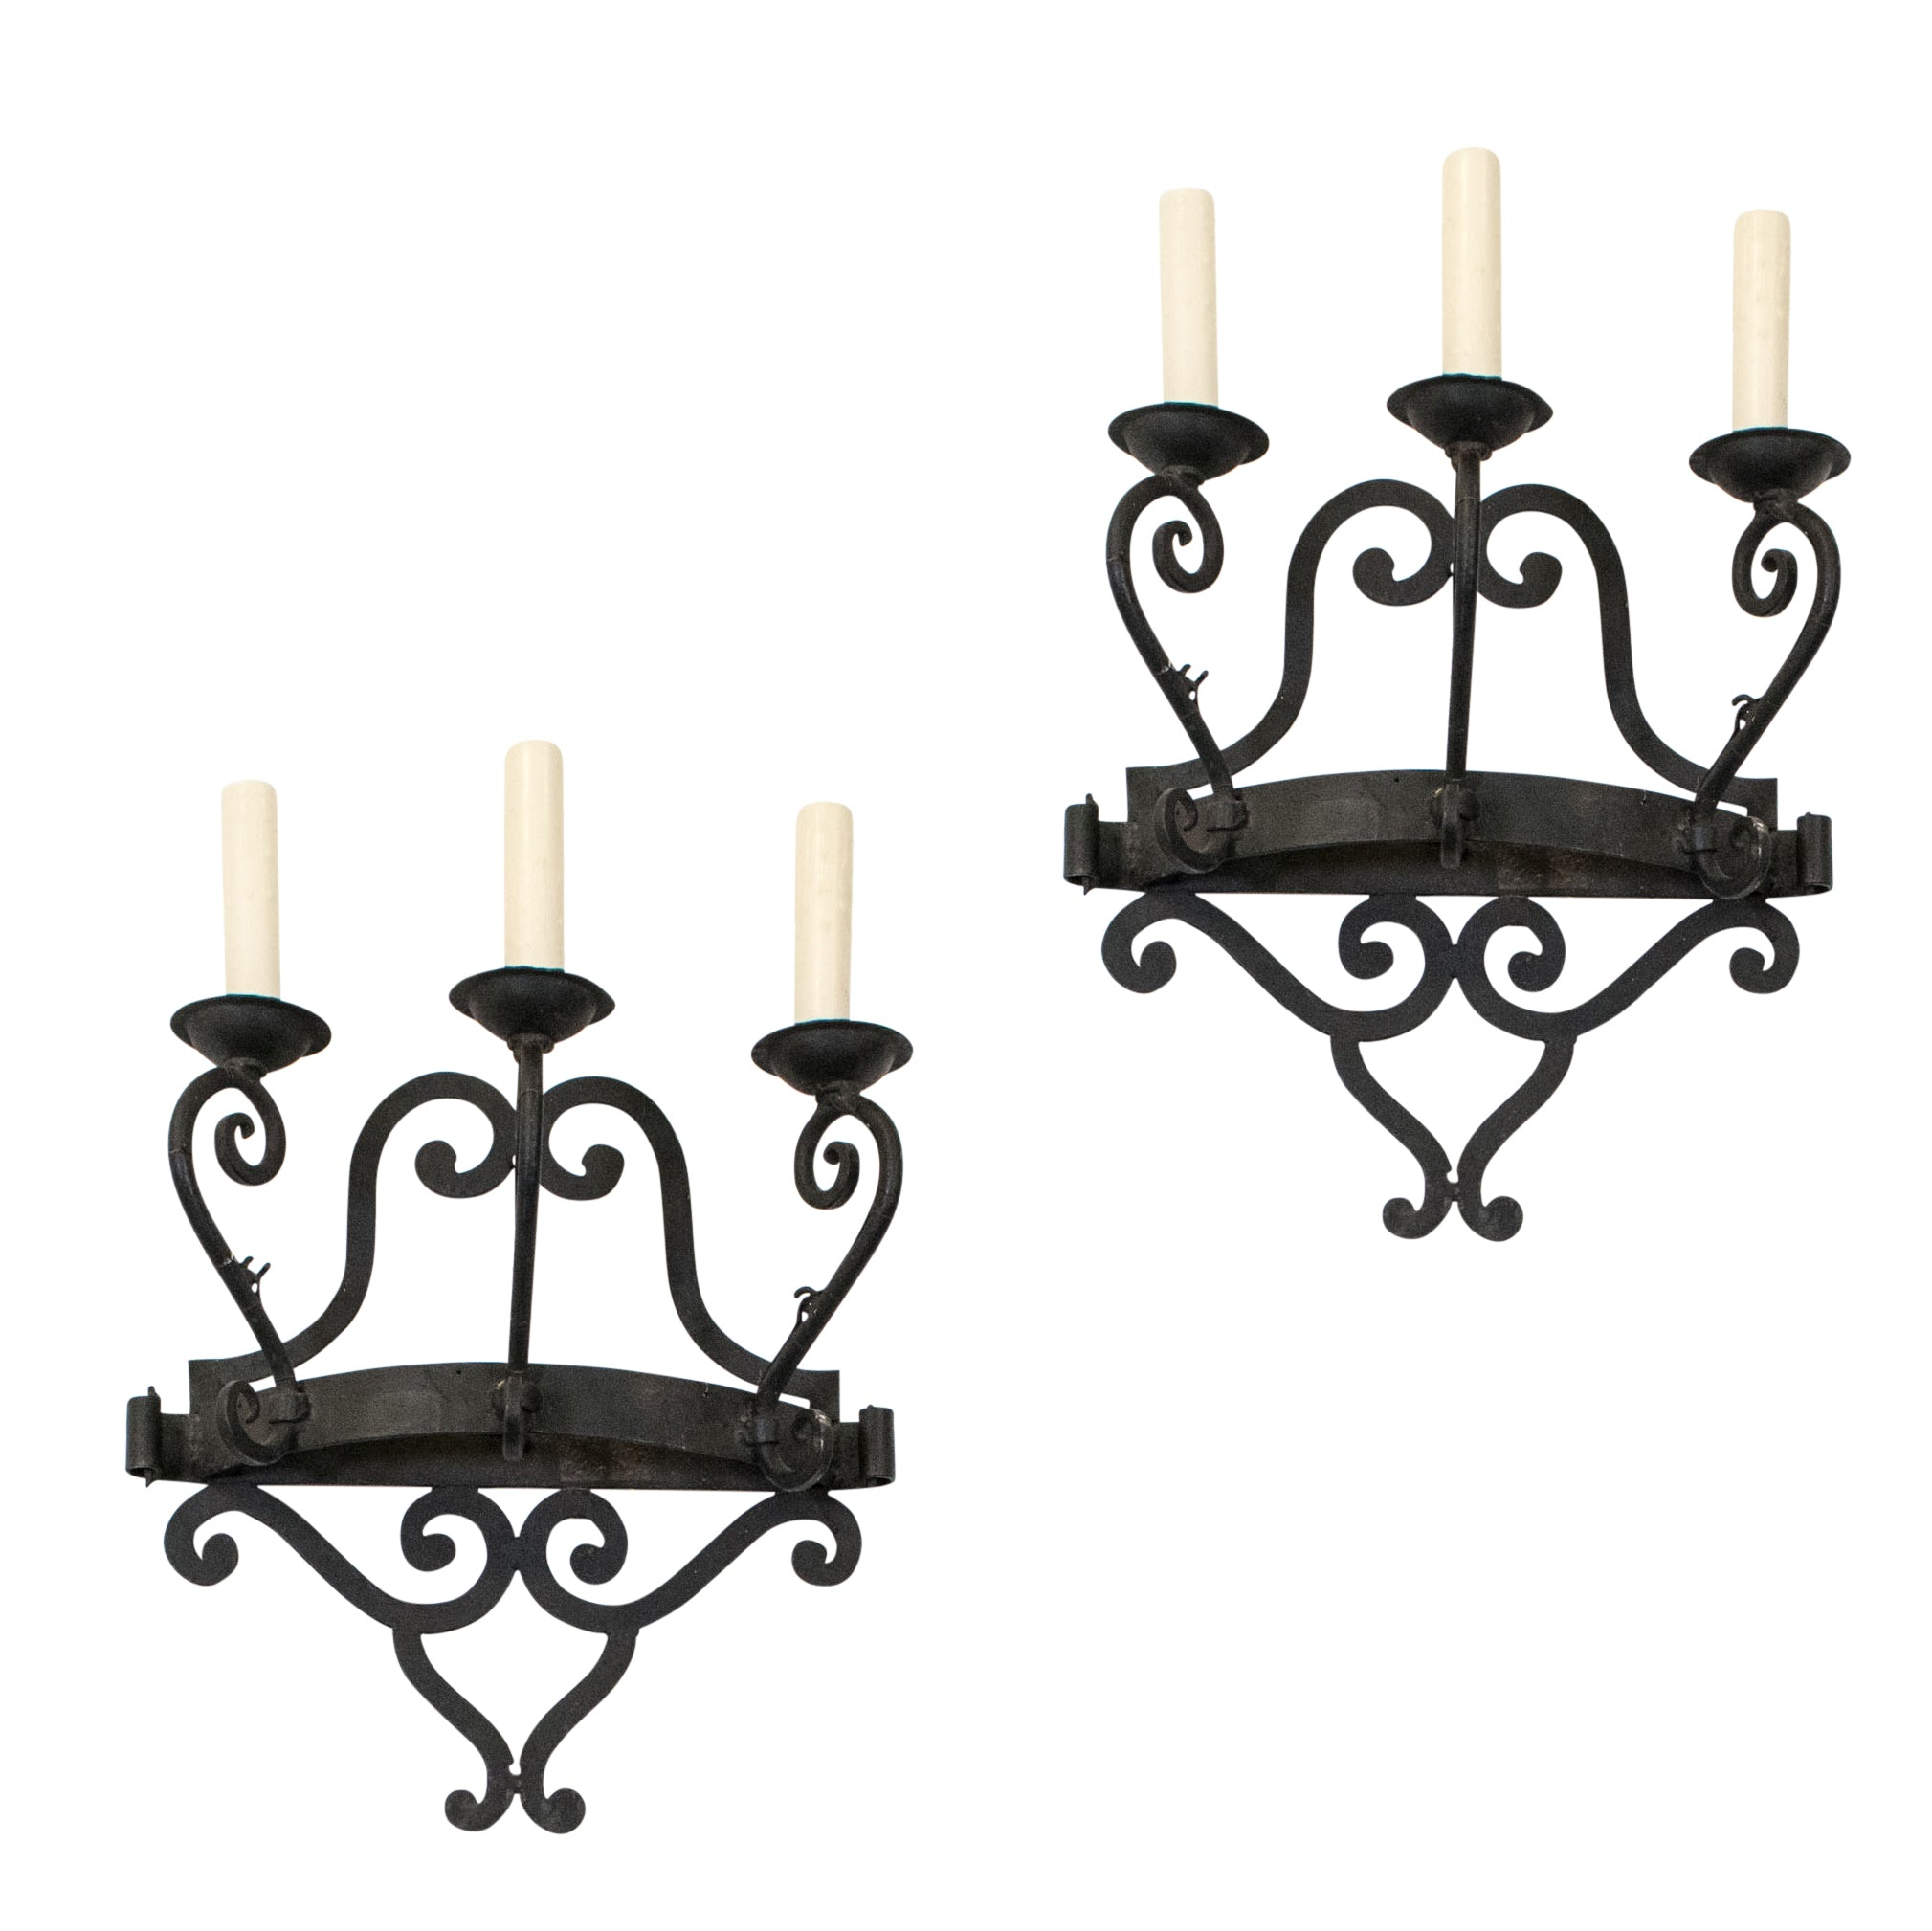 Pair of French 19th Century Forged Iron Wall Sconces (2 Pairs available)